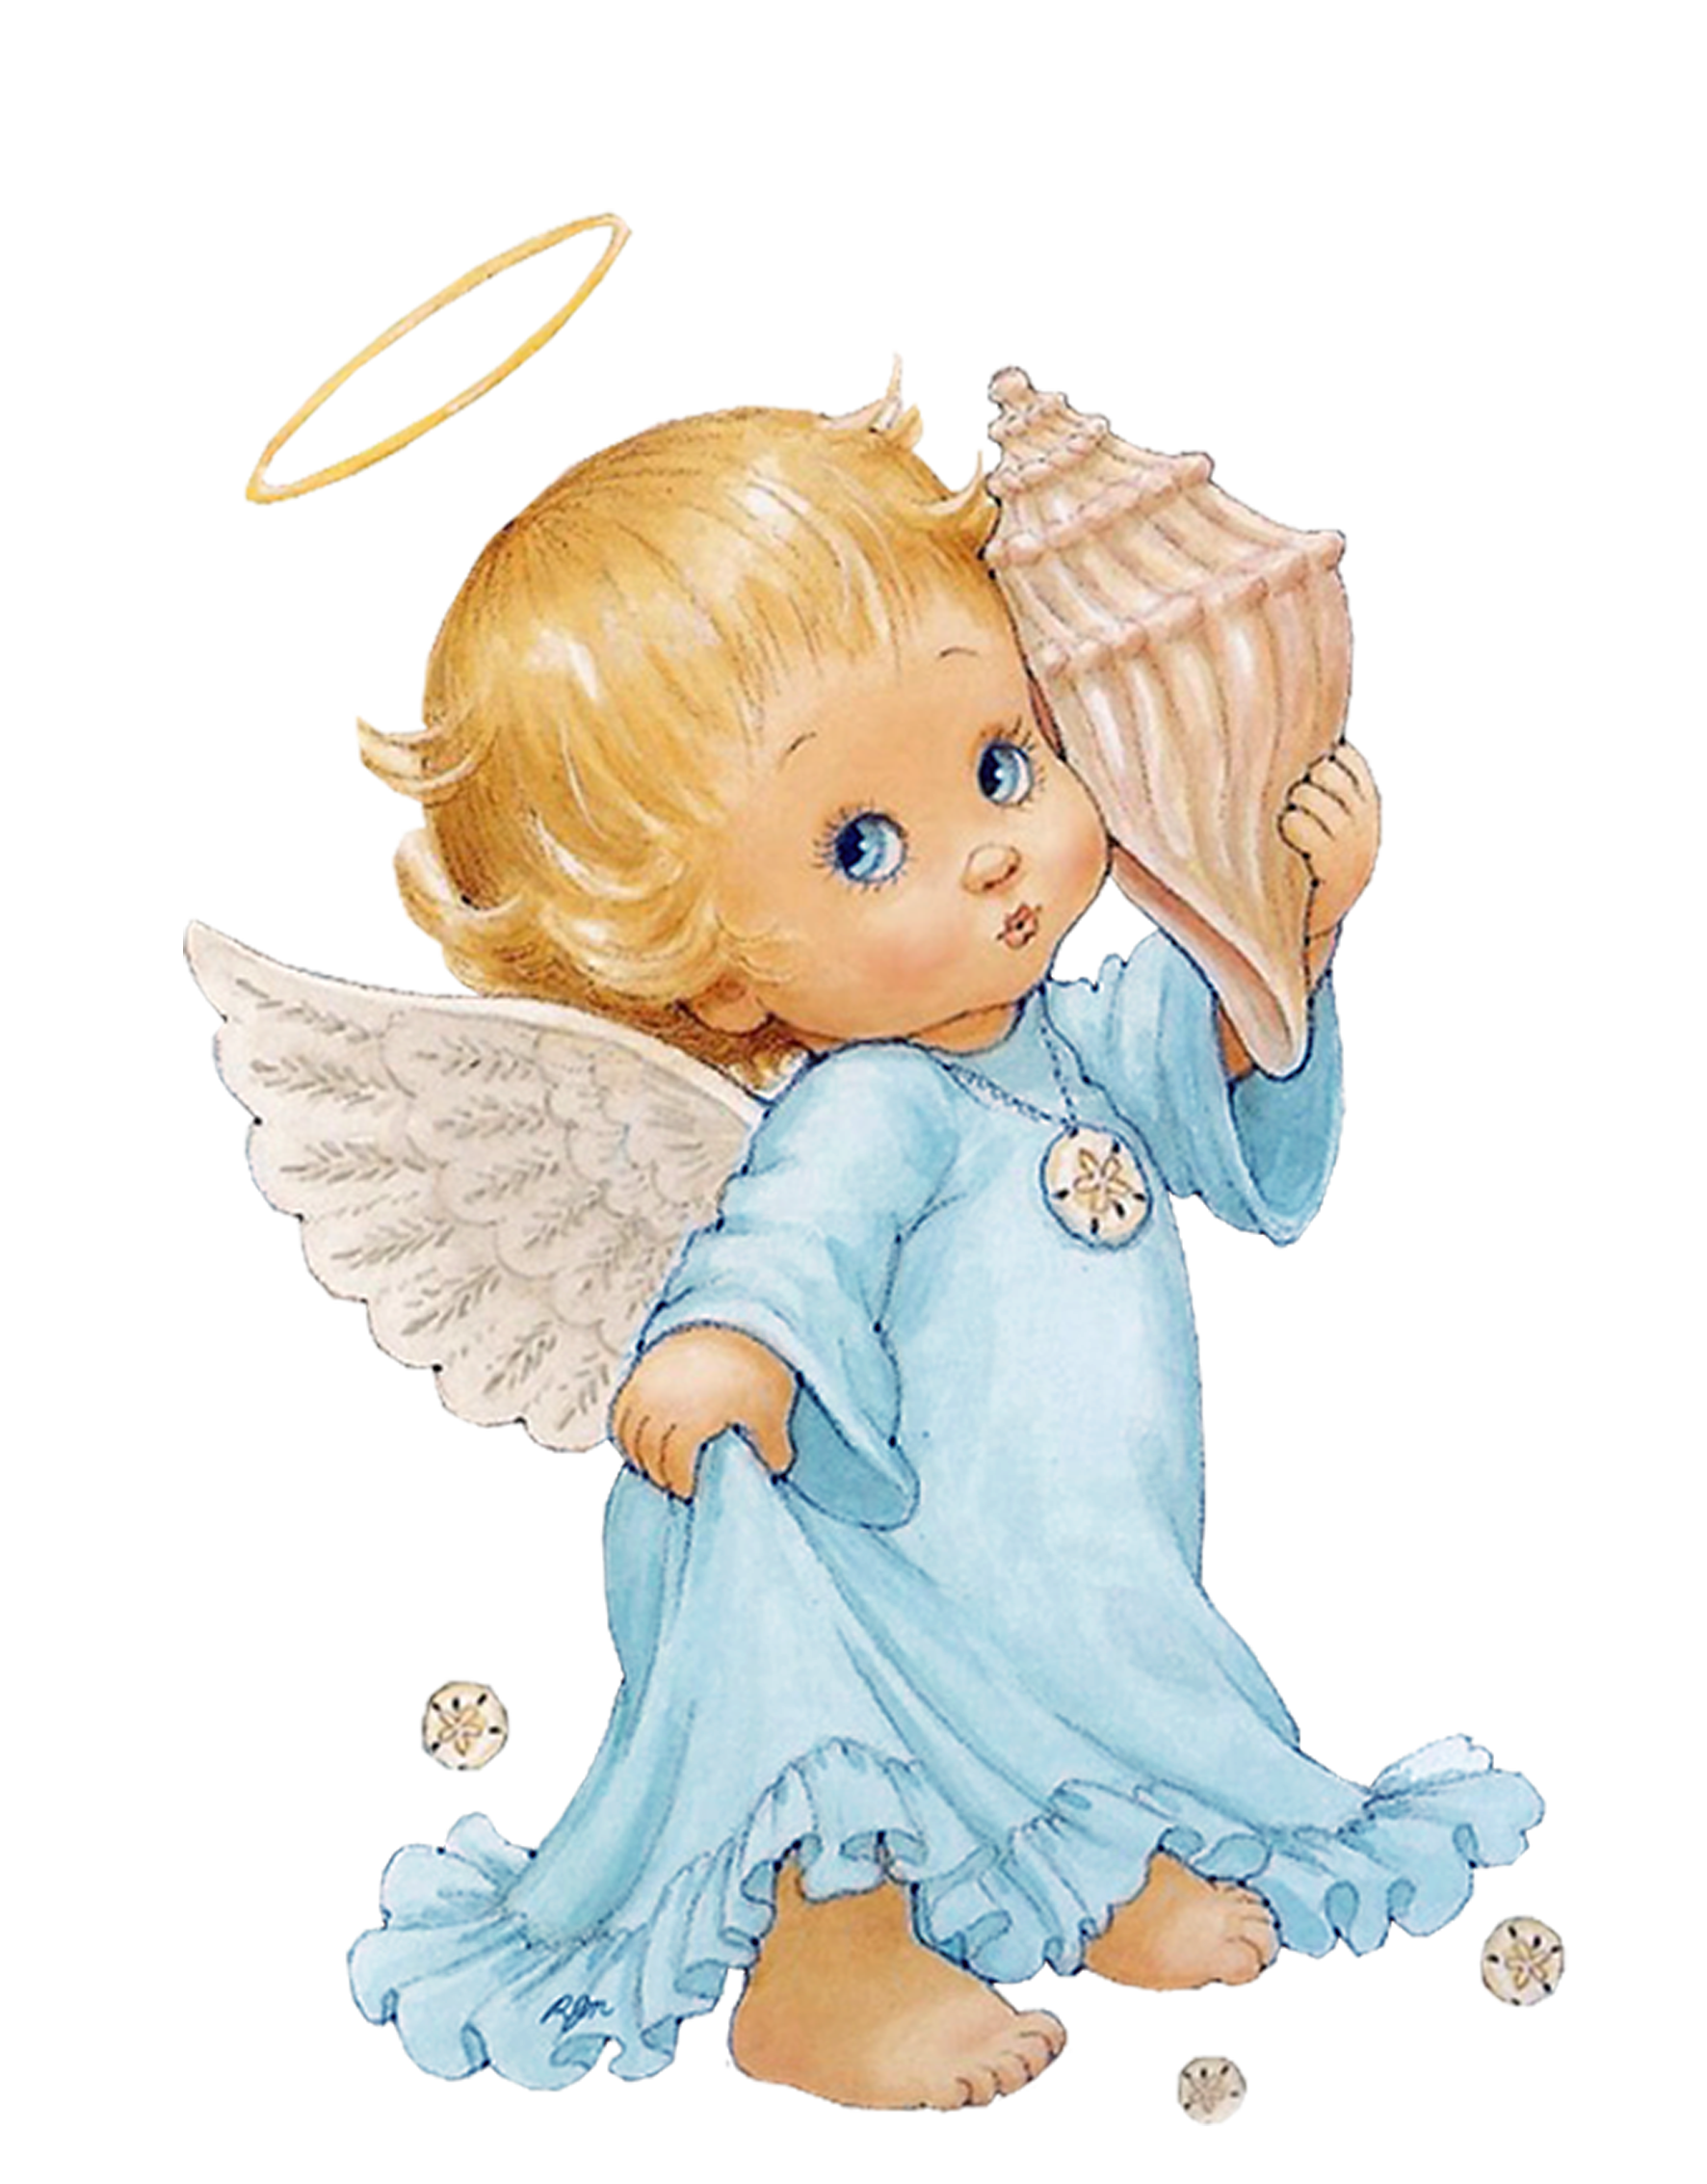 angelitos bebe 8  Imgenes de Angeles y Hadas  Pinterest